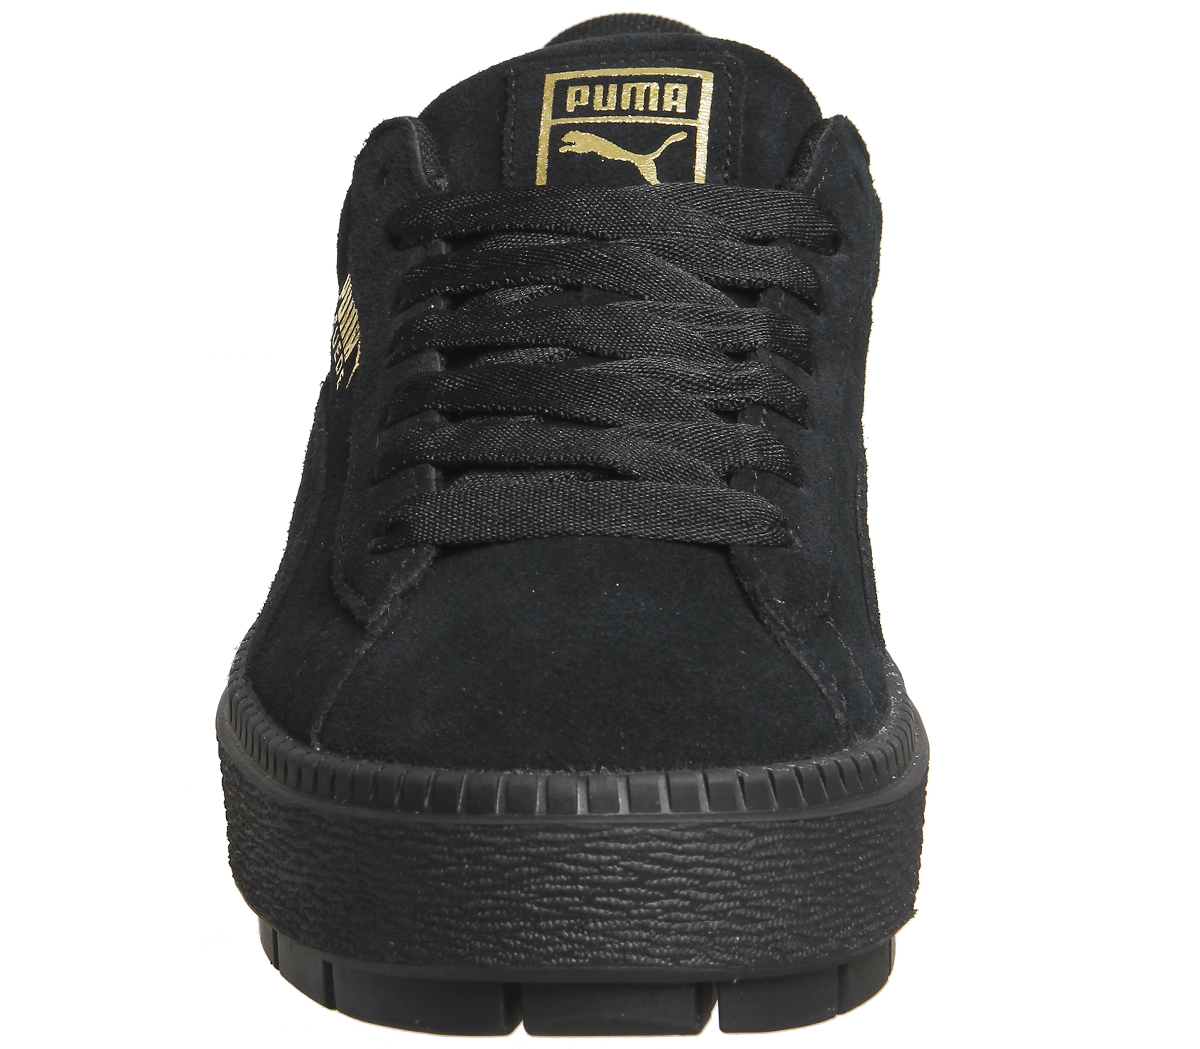 Womens Puma Suede Platform Trace Trainers PUMA BLACK Trainers Shoes ... f6d9d1ad5